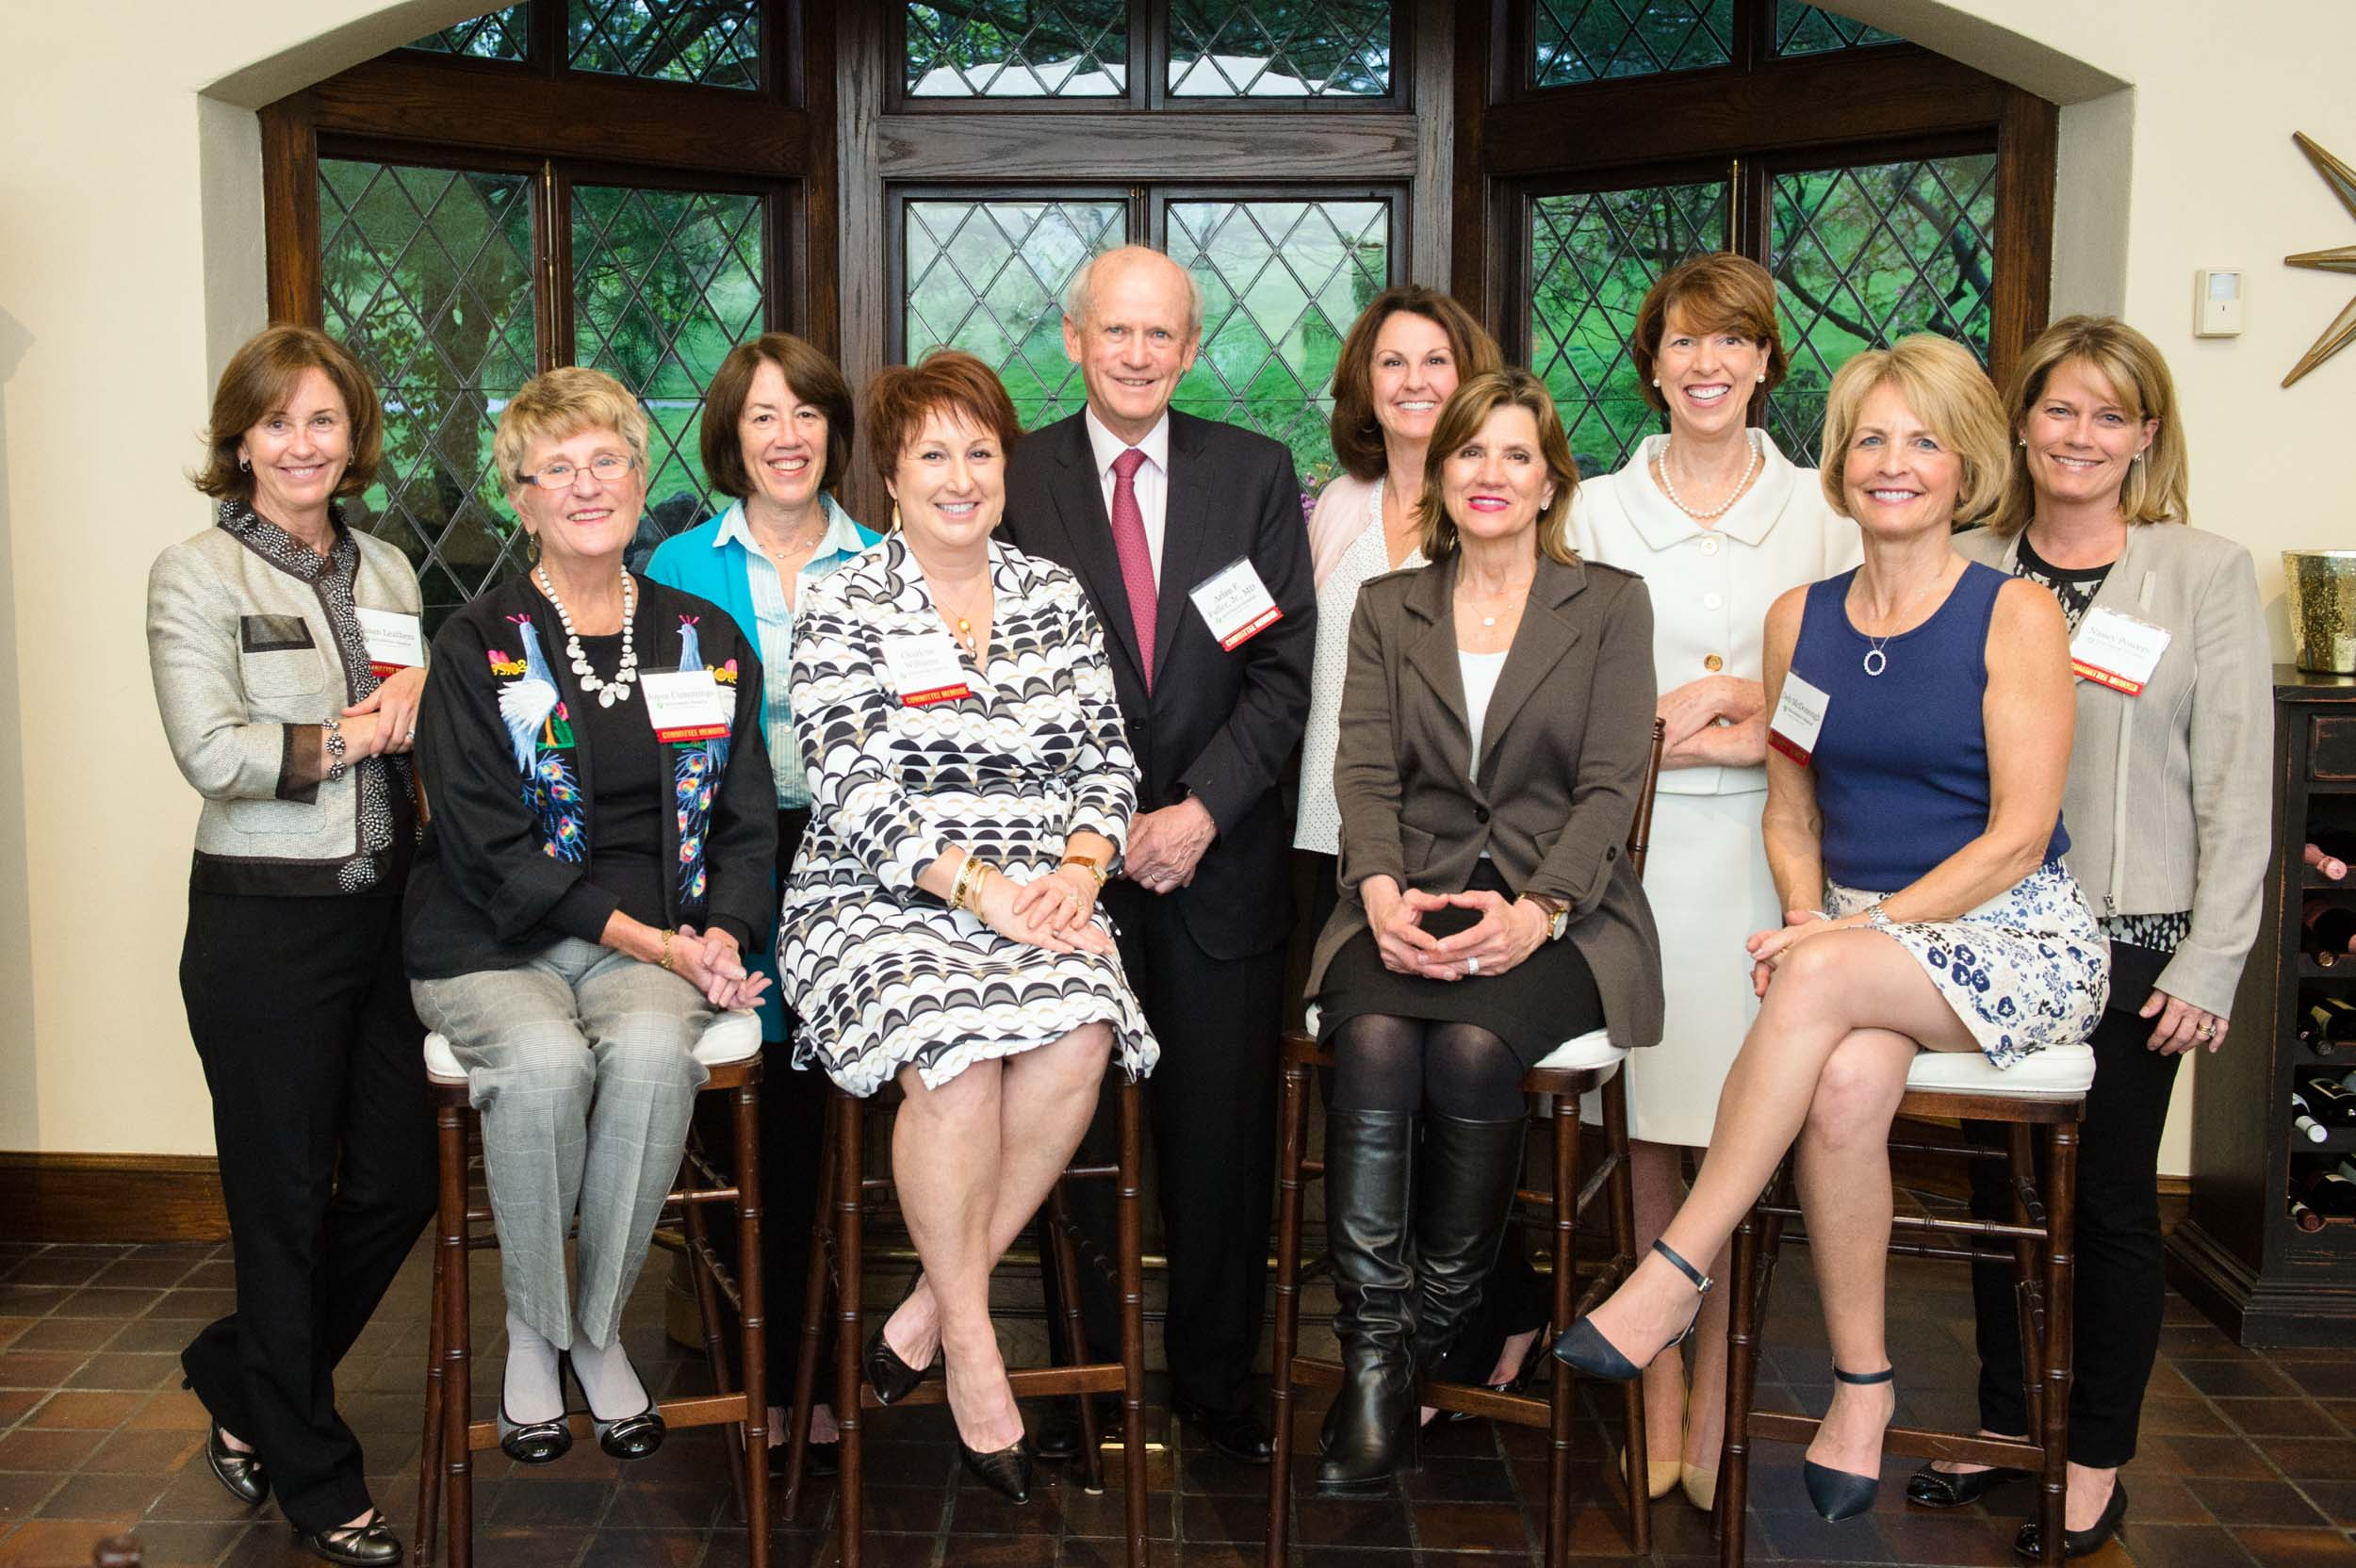 Maura Wayman Photography, Photography, Corporate Photography,Massachusetts, Boston, Metro West, events, Corporate events, Photographer, Functions, Parties, Fundraisers, Lahey Health, Lahey, Winchester, Group picture, team, speakers